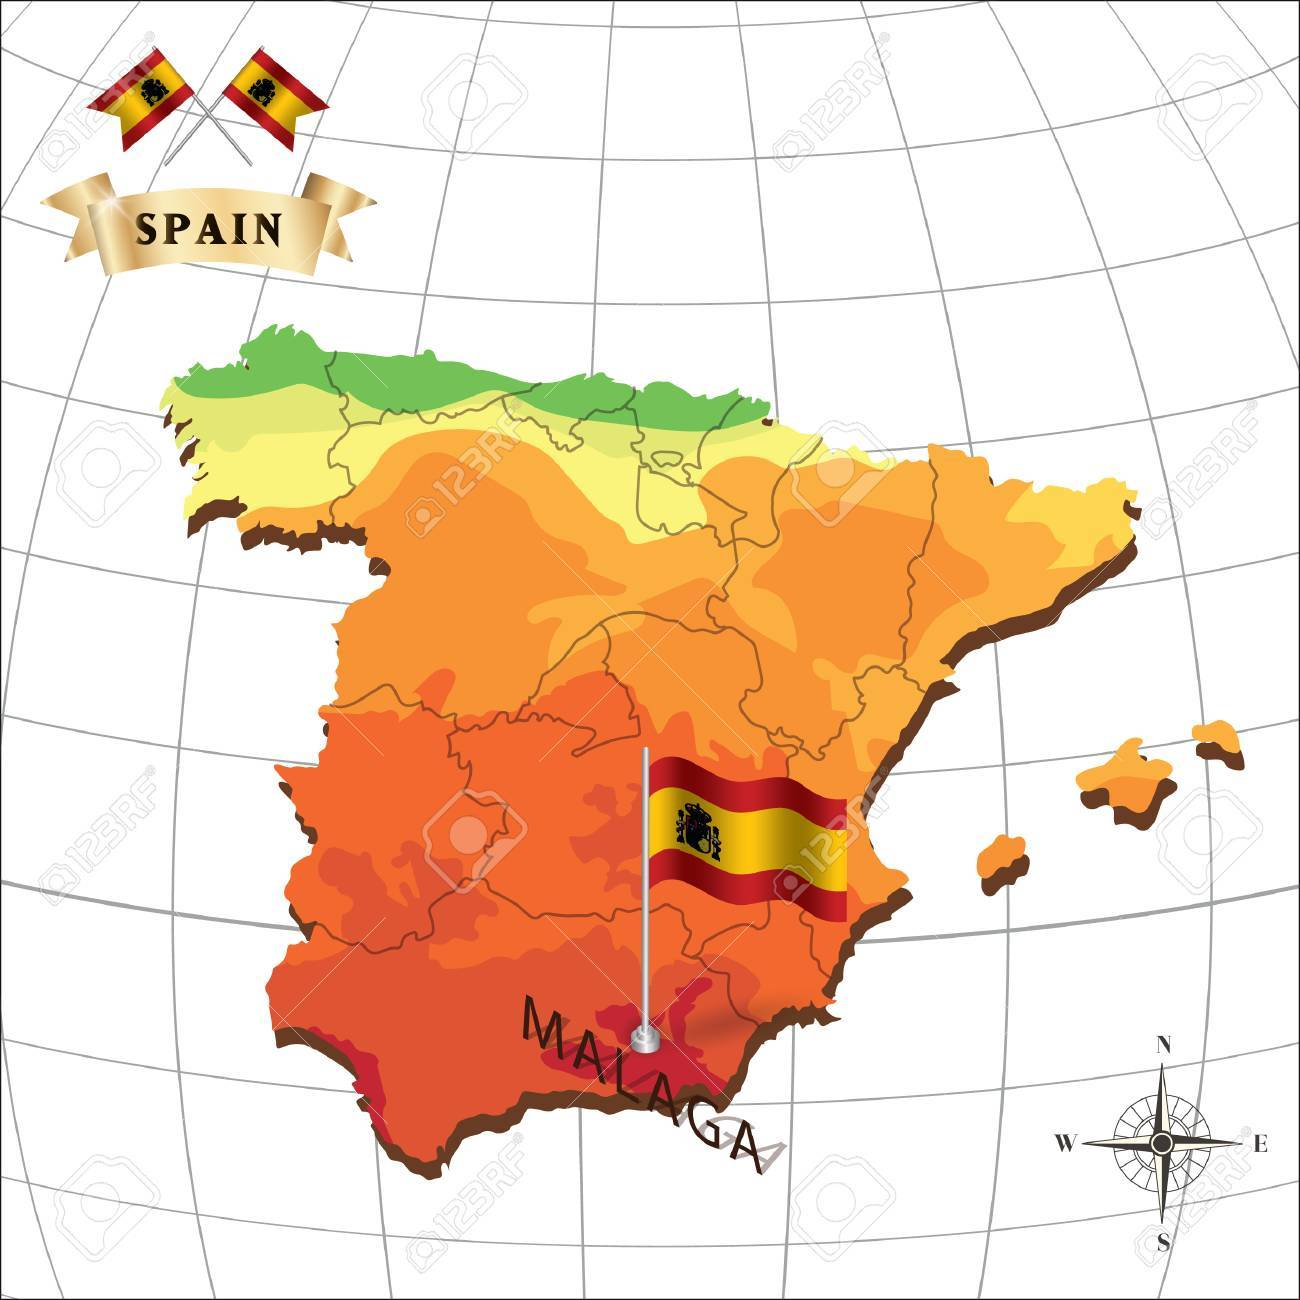 Map Of Spain Malaga.Map Of Spain With Malaga